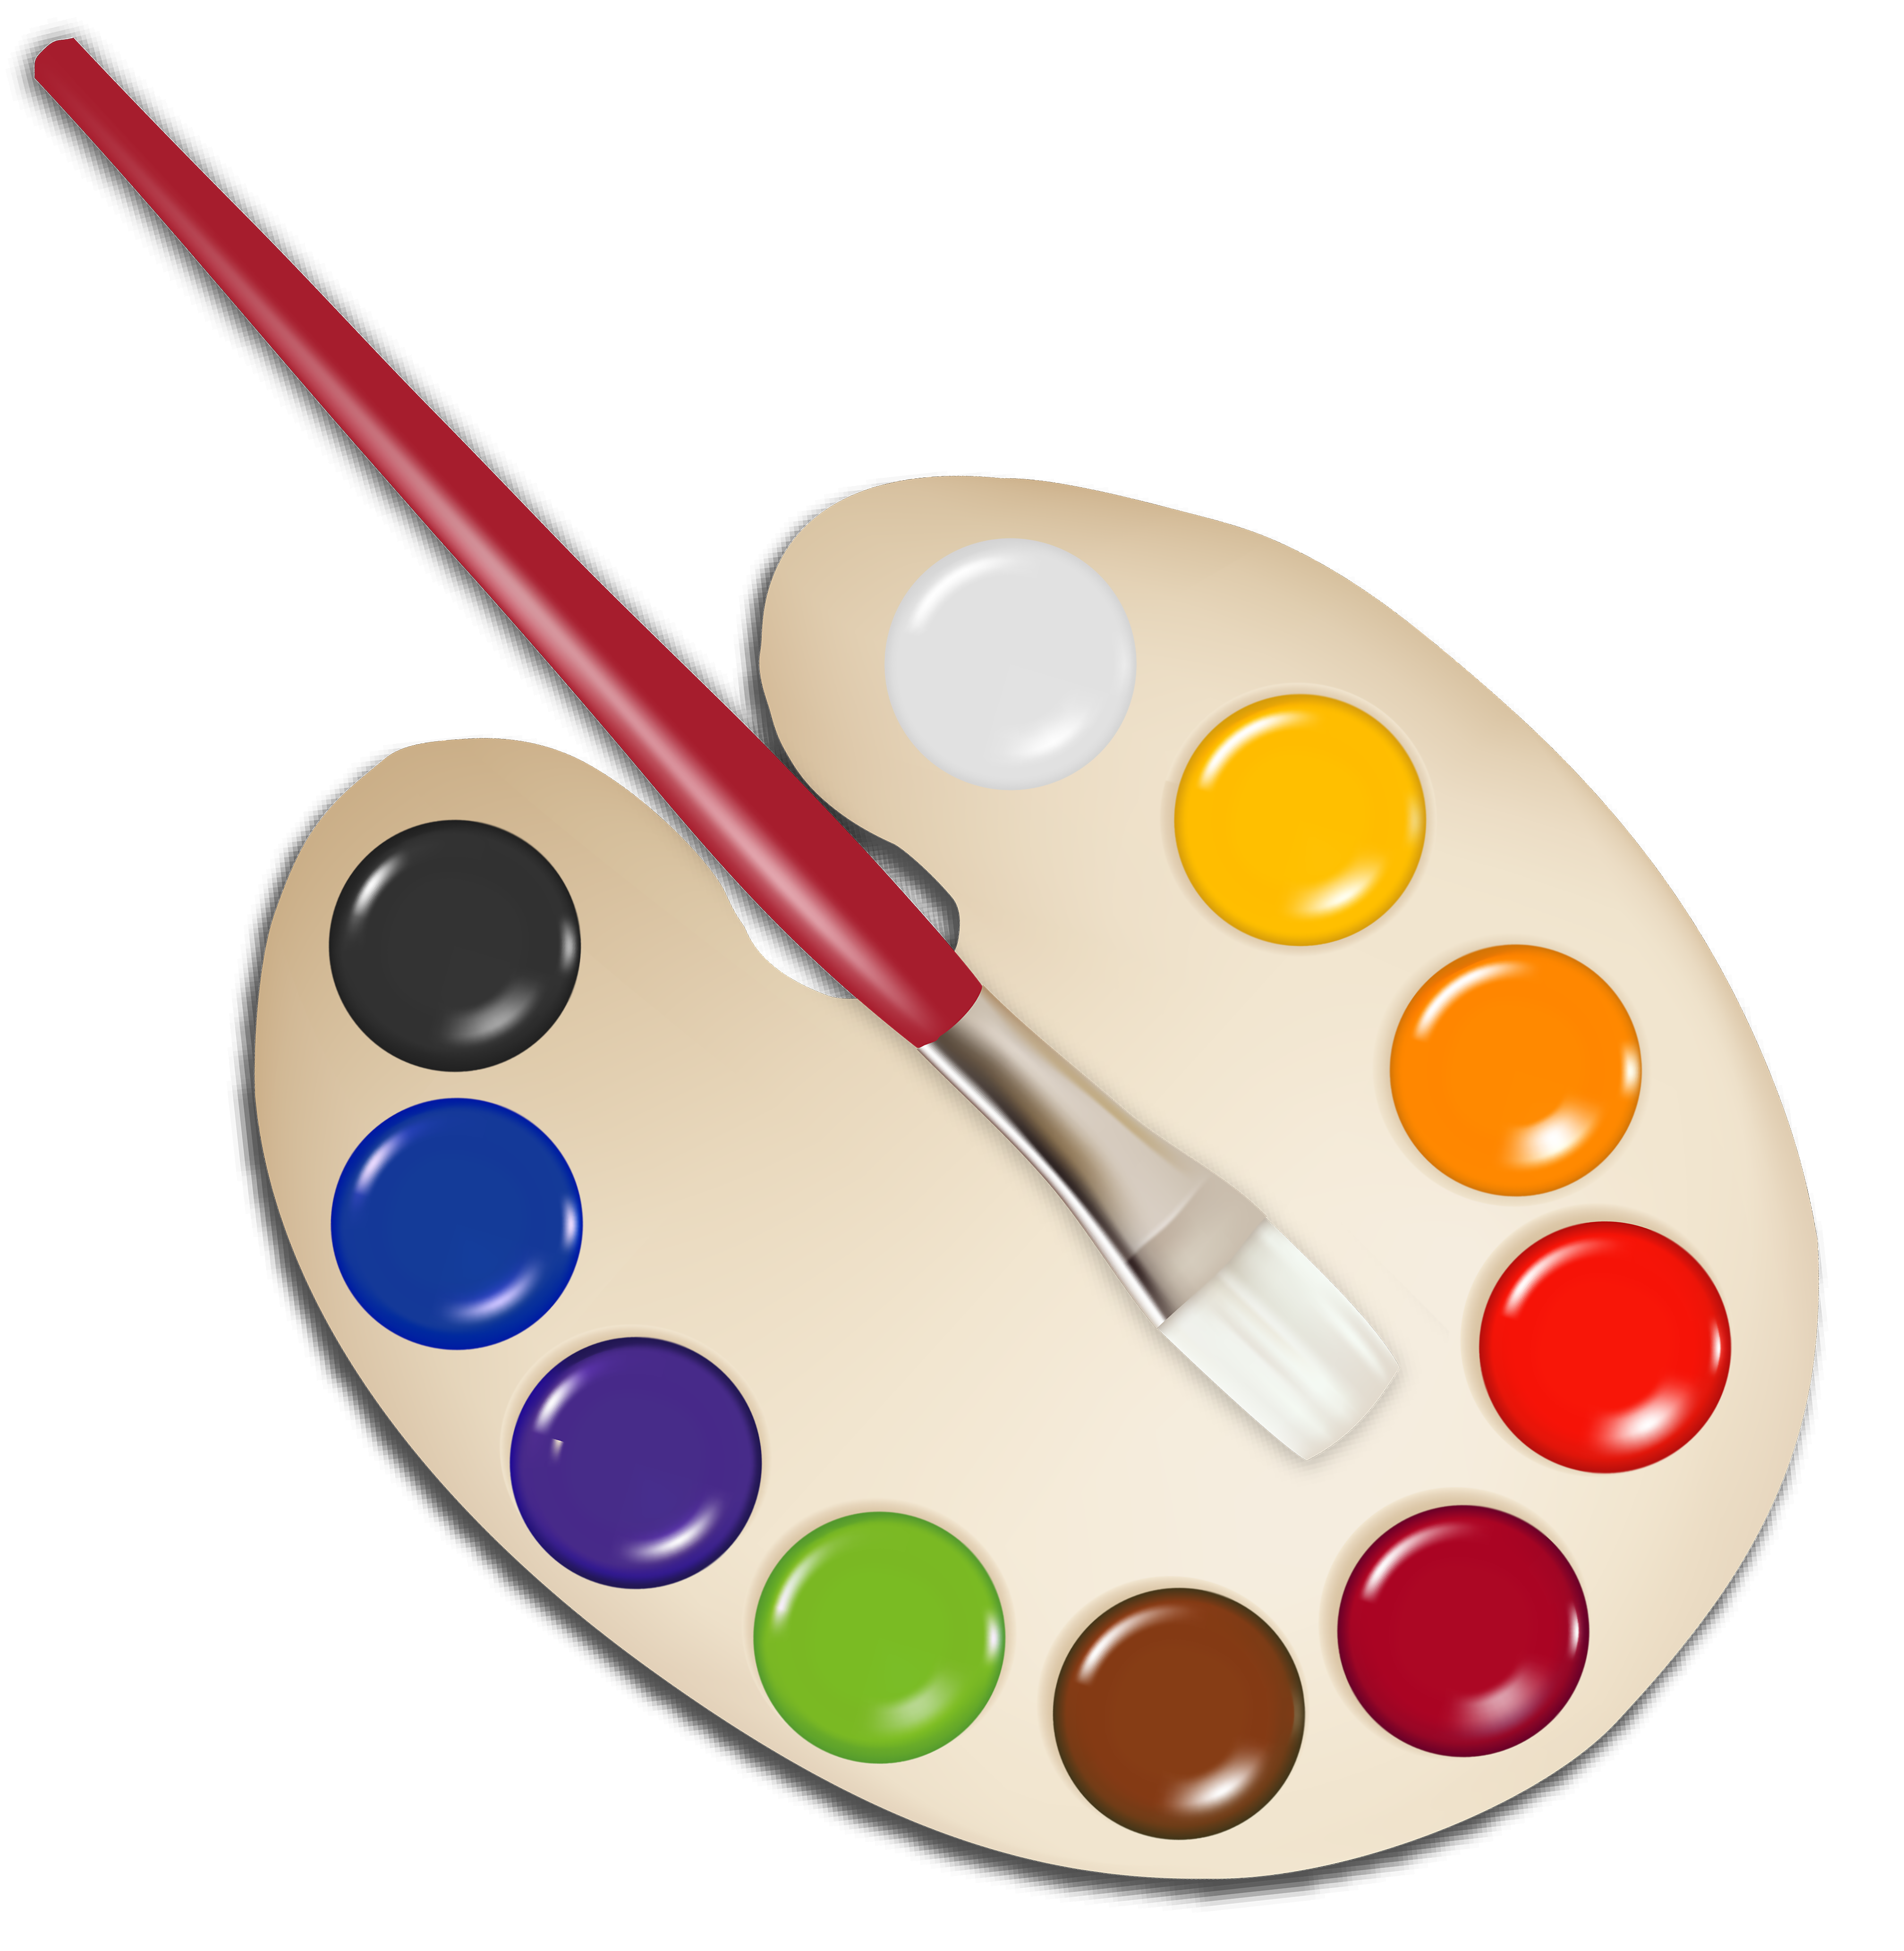 Brush clipart transparent background. Palette with paint png